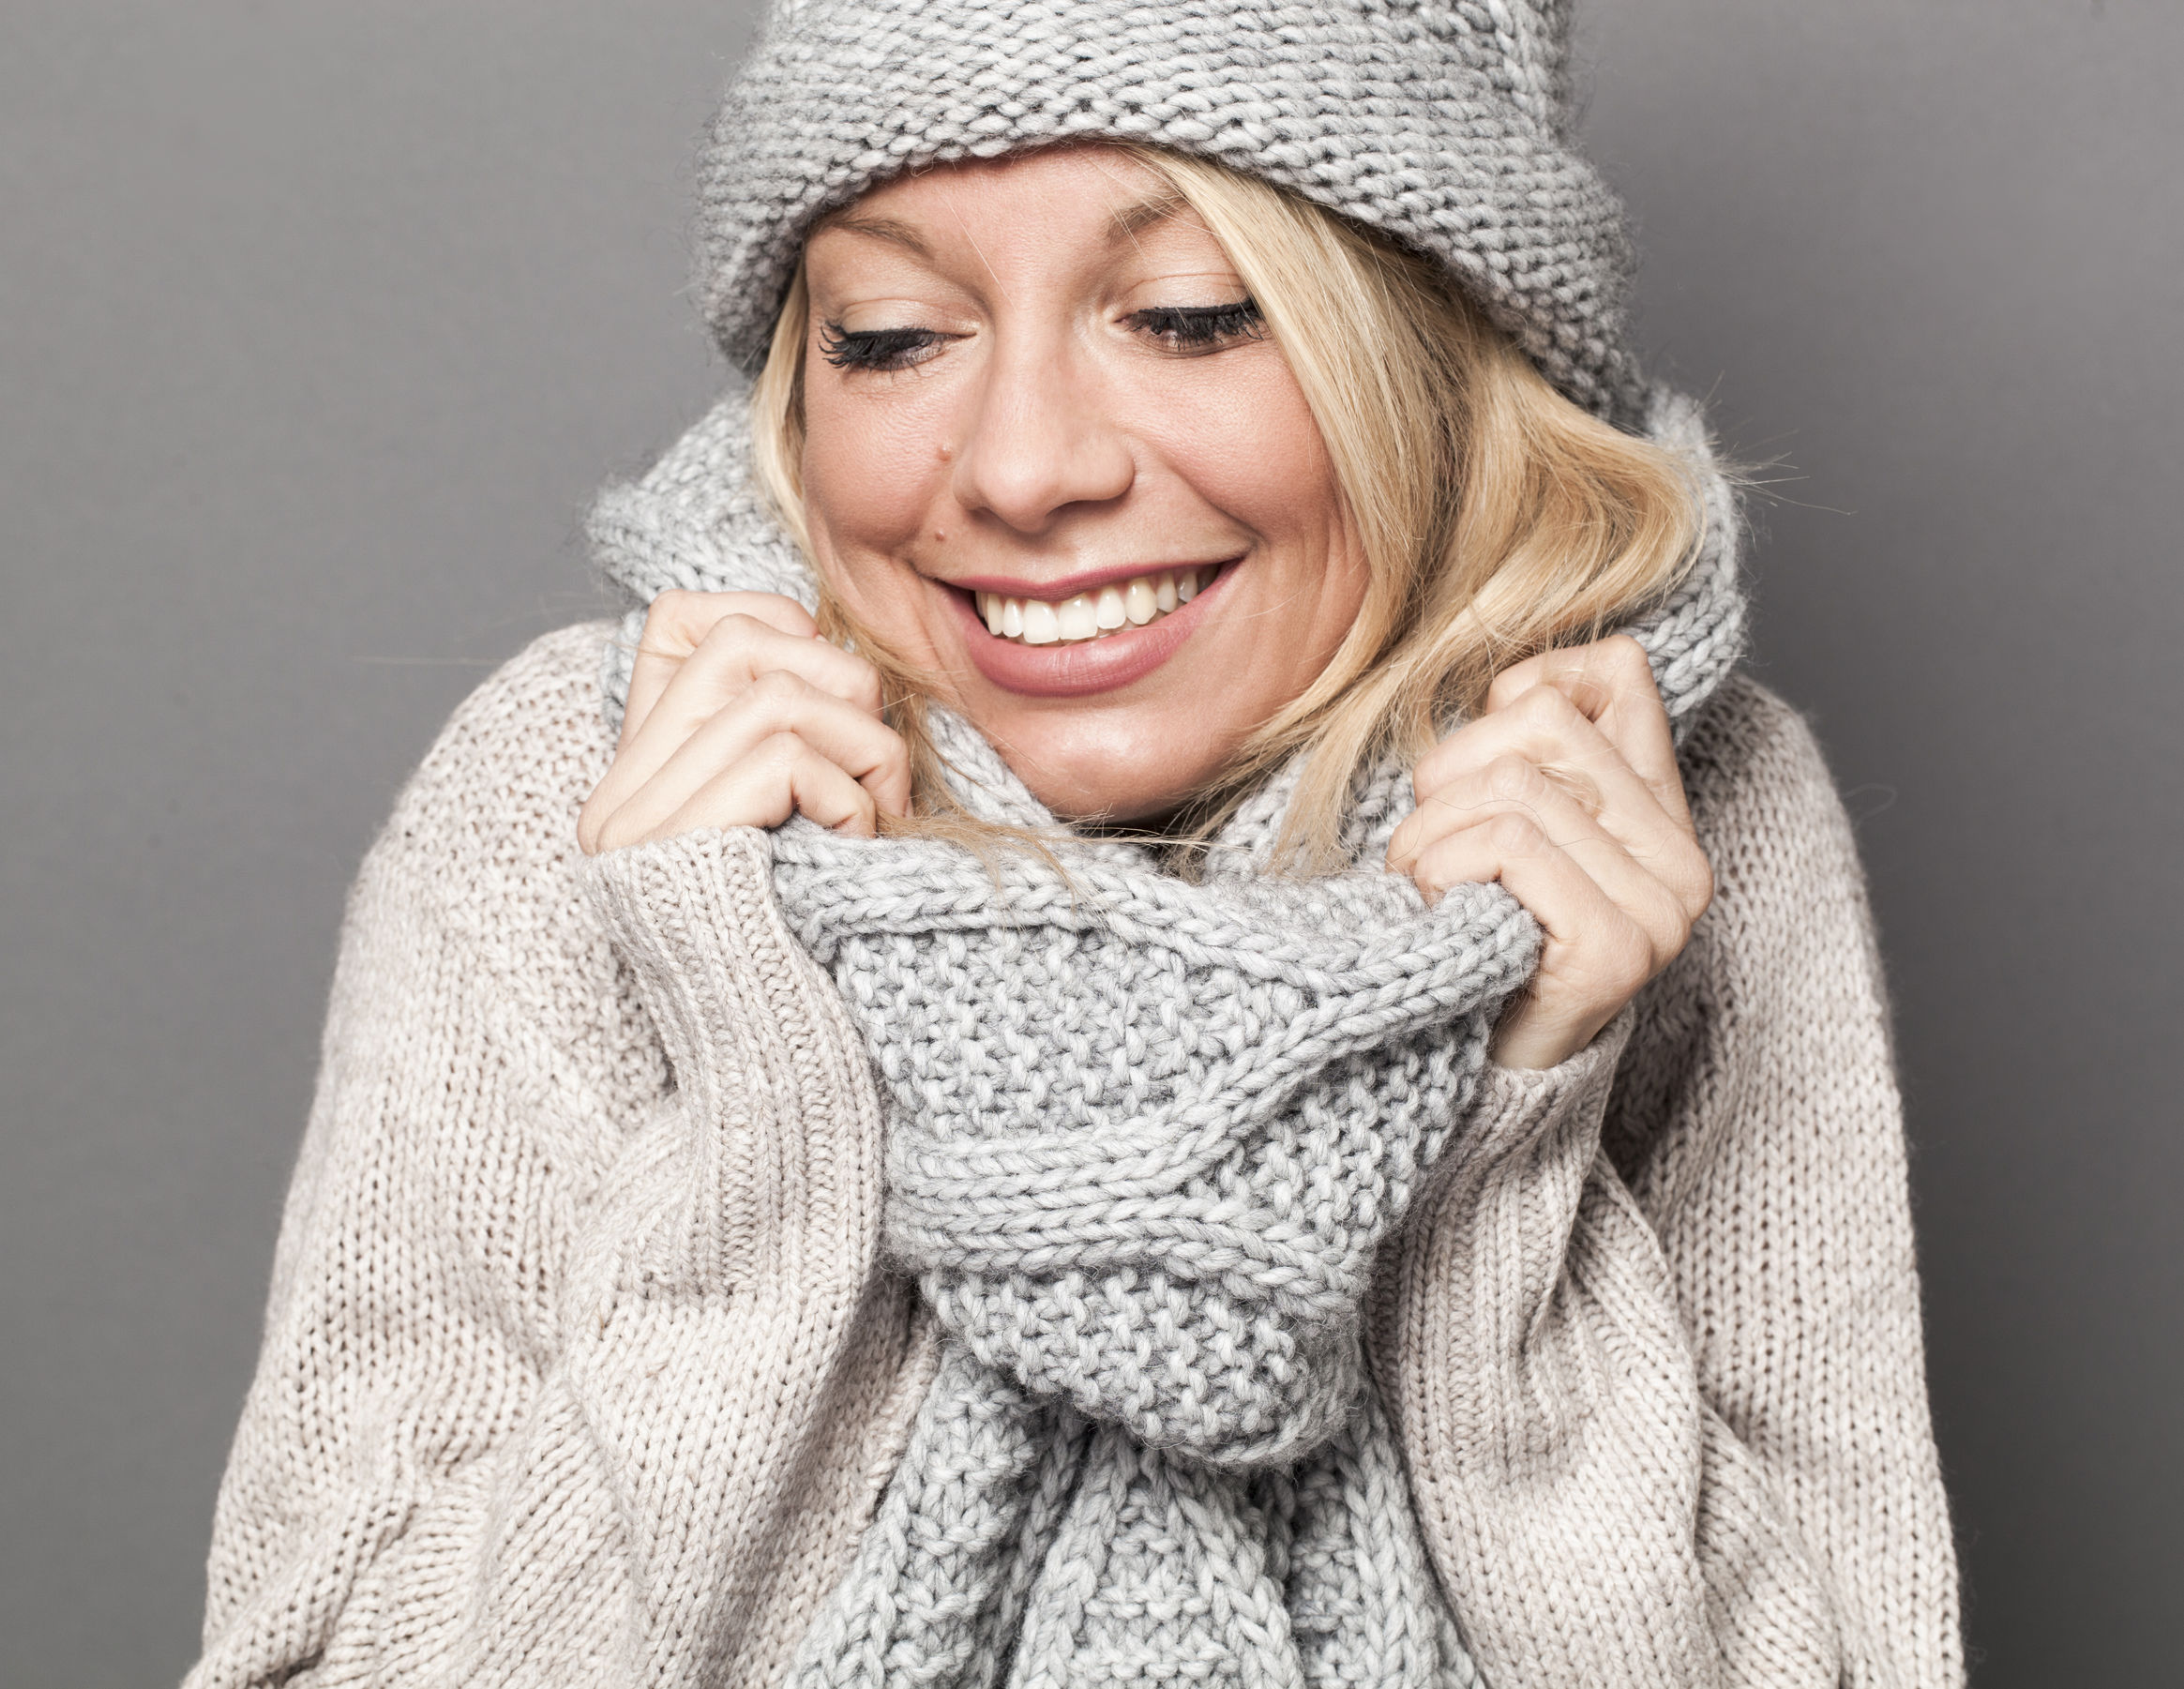 47014101 - trendy warm winter - gorgeous young blond woman wrapping up herself in gray wool winter hat and scarf smiling for softness and cozy fashion